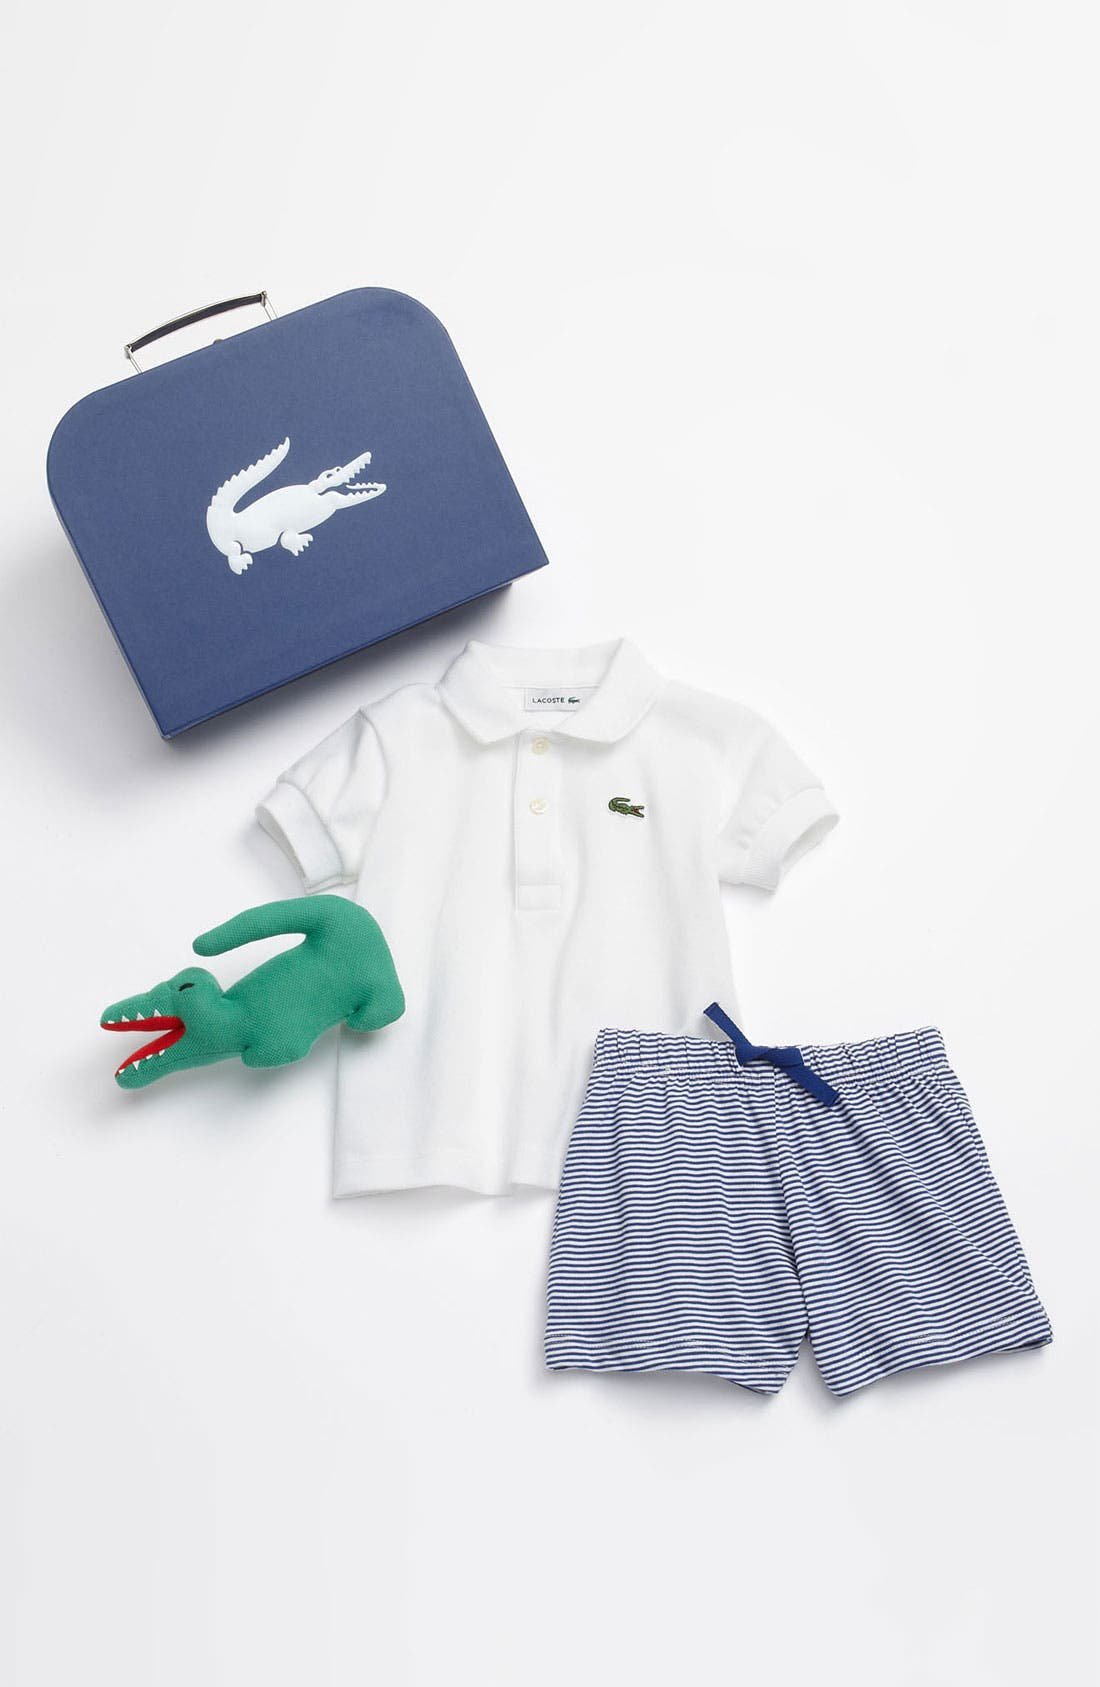 Main Image - Lacoste Polo & Shorts (Baby)